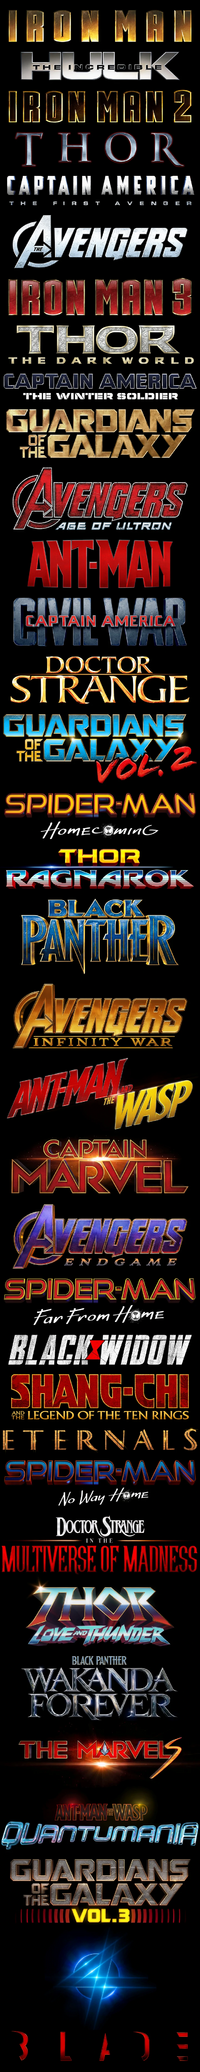 Marvel Universo Completo.png